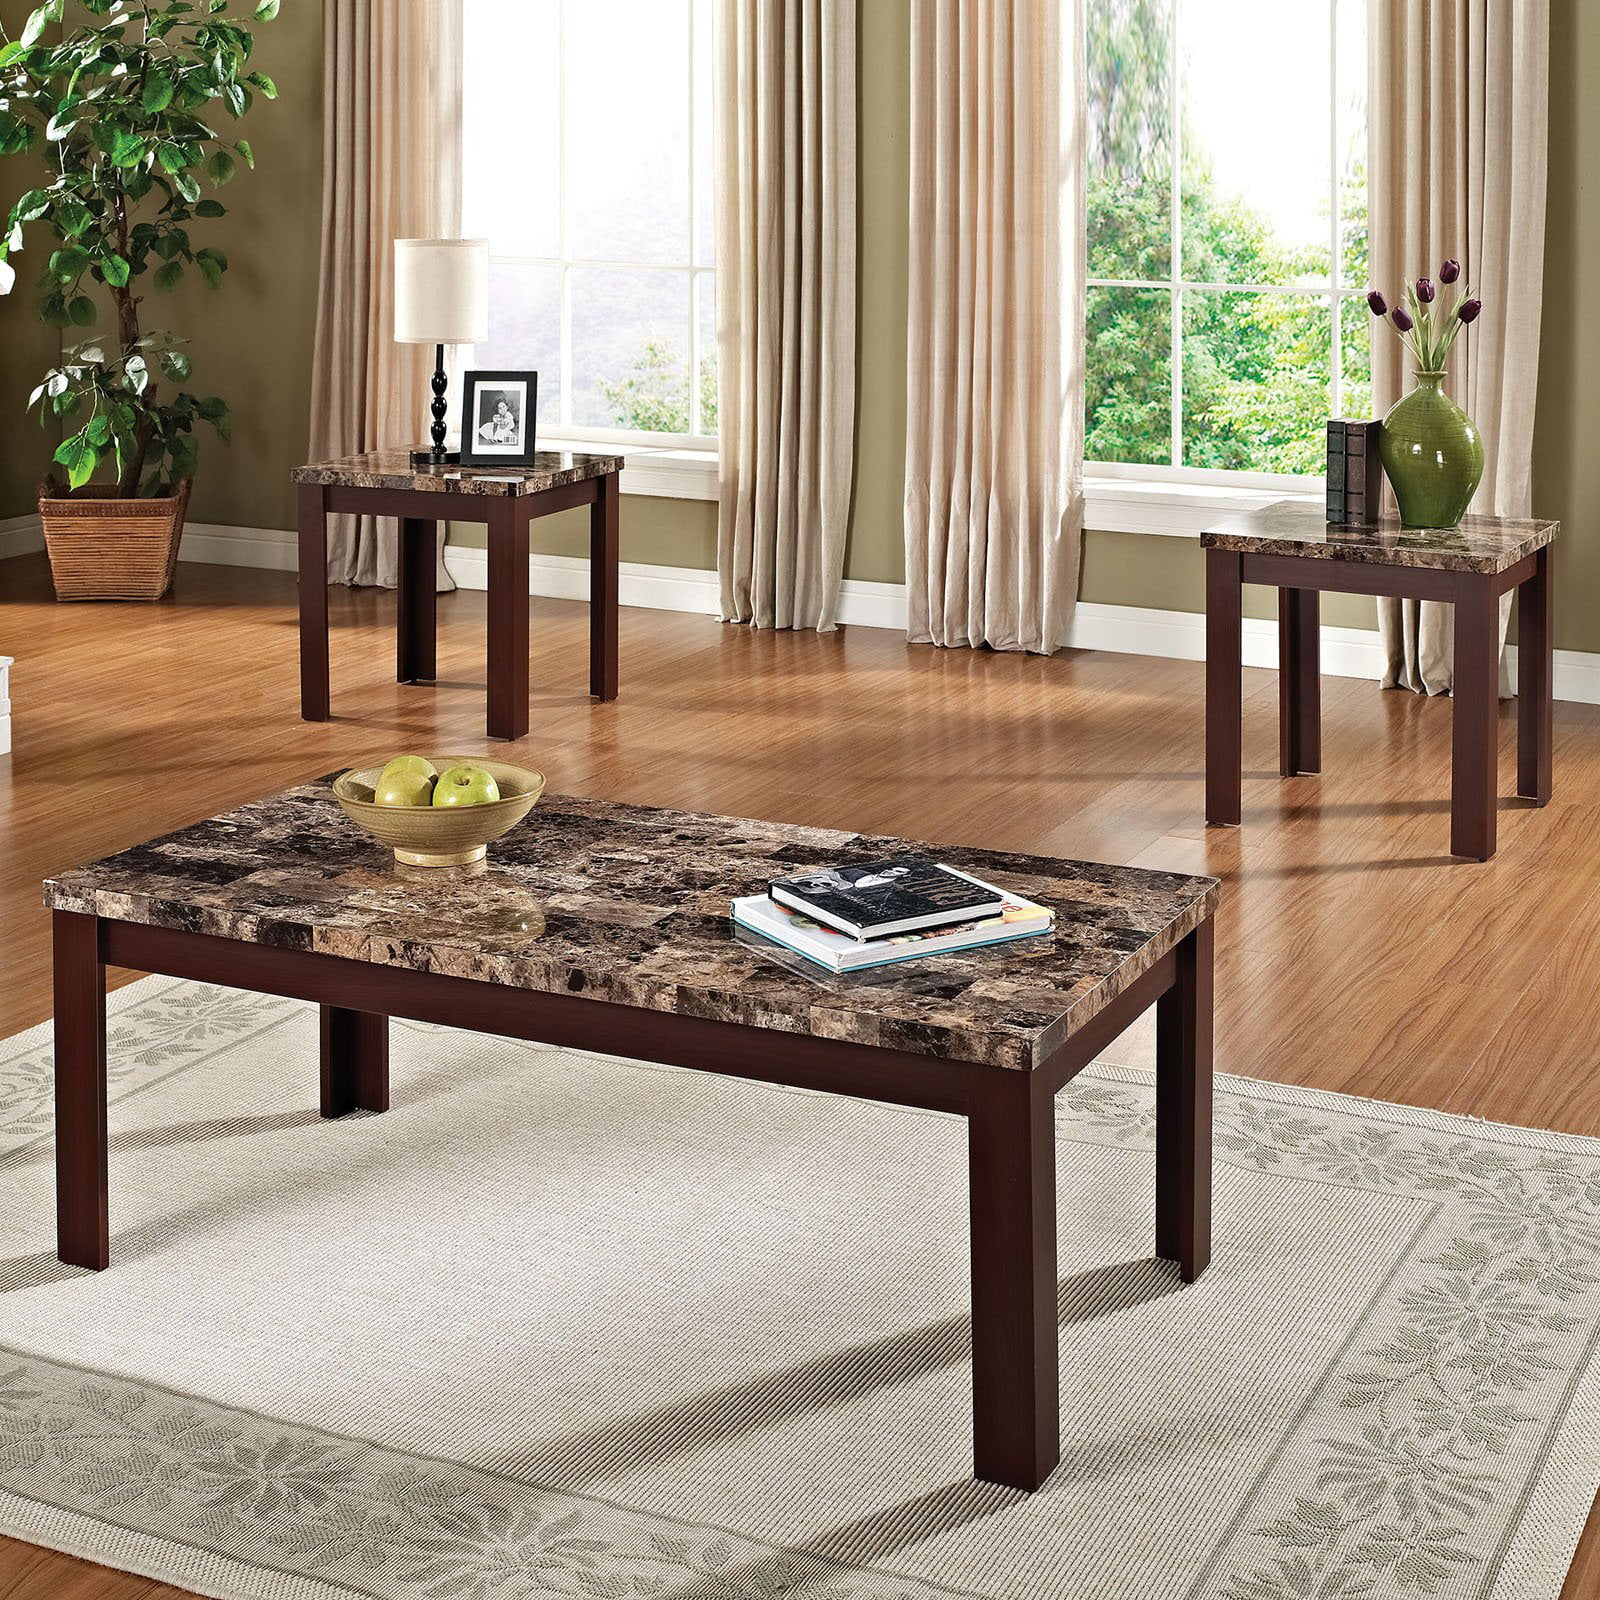 Faux Marble Table From Big Lots: Faux Marble 3 Piece Coffee And End Table Set, Brown And